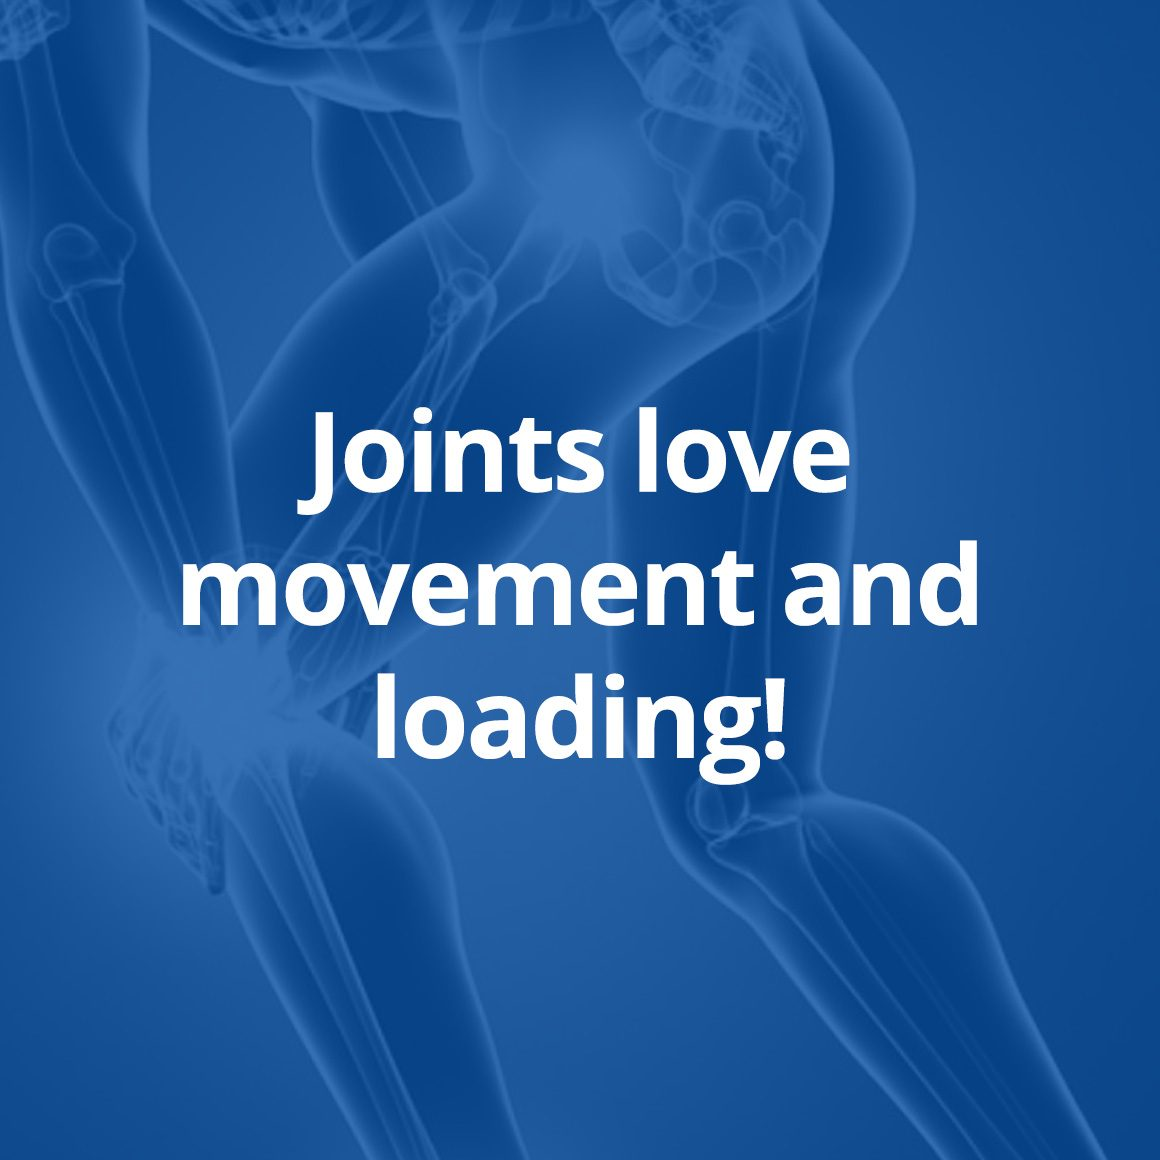 Joints love movement and loading!